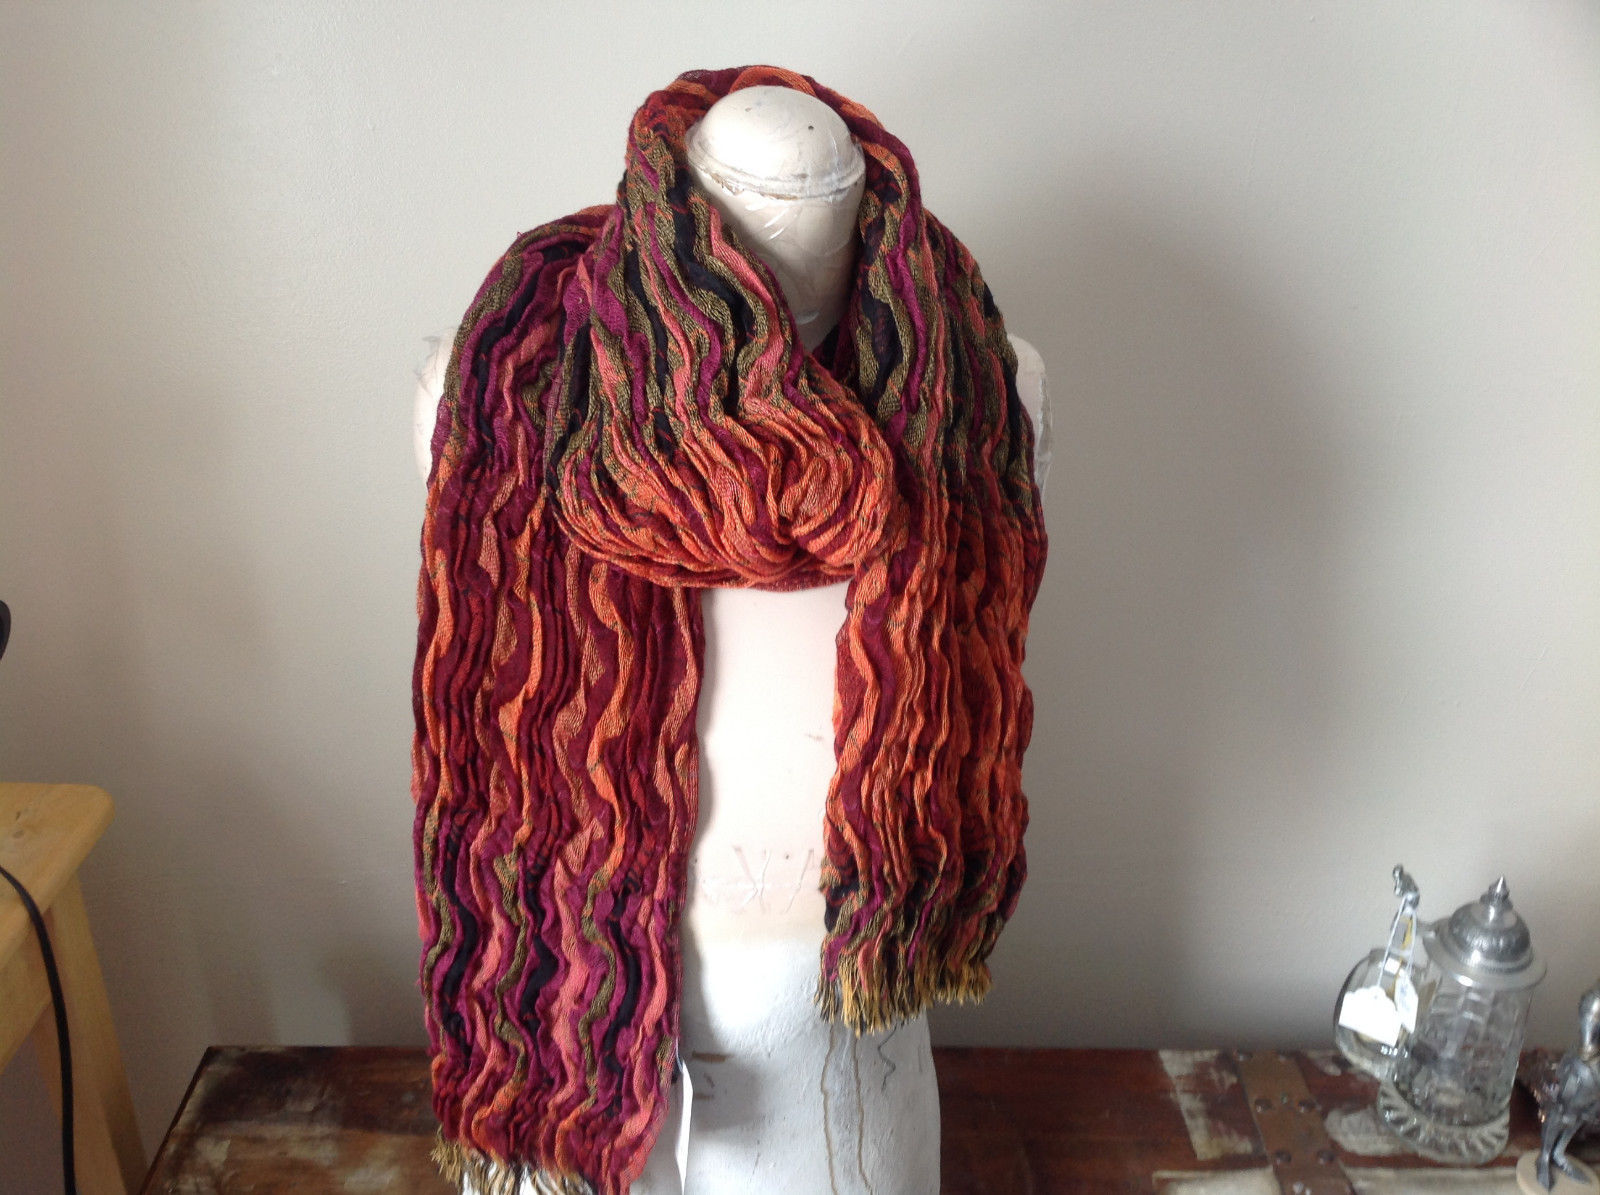 Bohemian Style Scarf in Orange Red Black Shades Stretchy